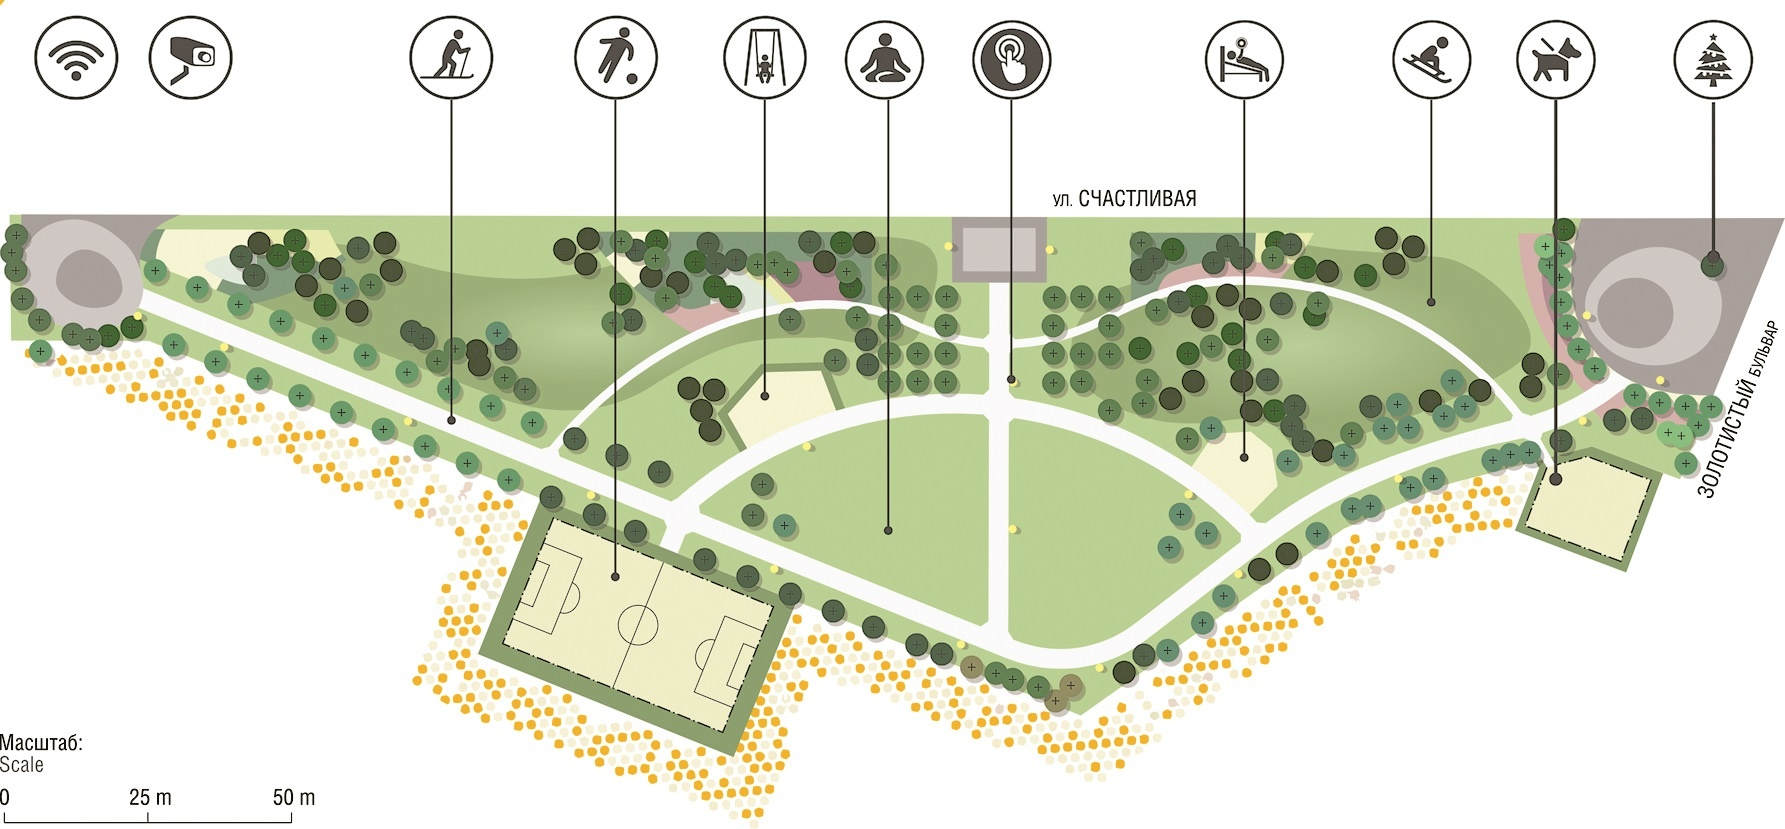 1ST STAGE OF THE PUBLIC PARK I N THE, «SOLNECHNY» RESIDENTIAL AREA